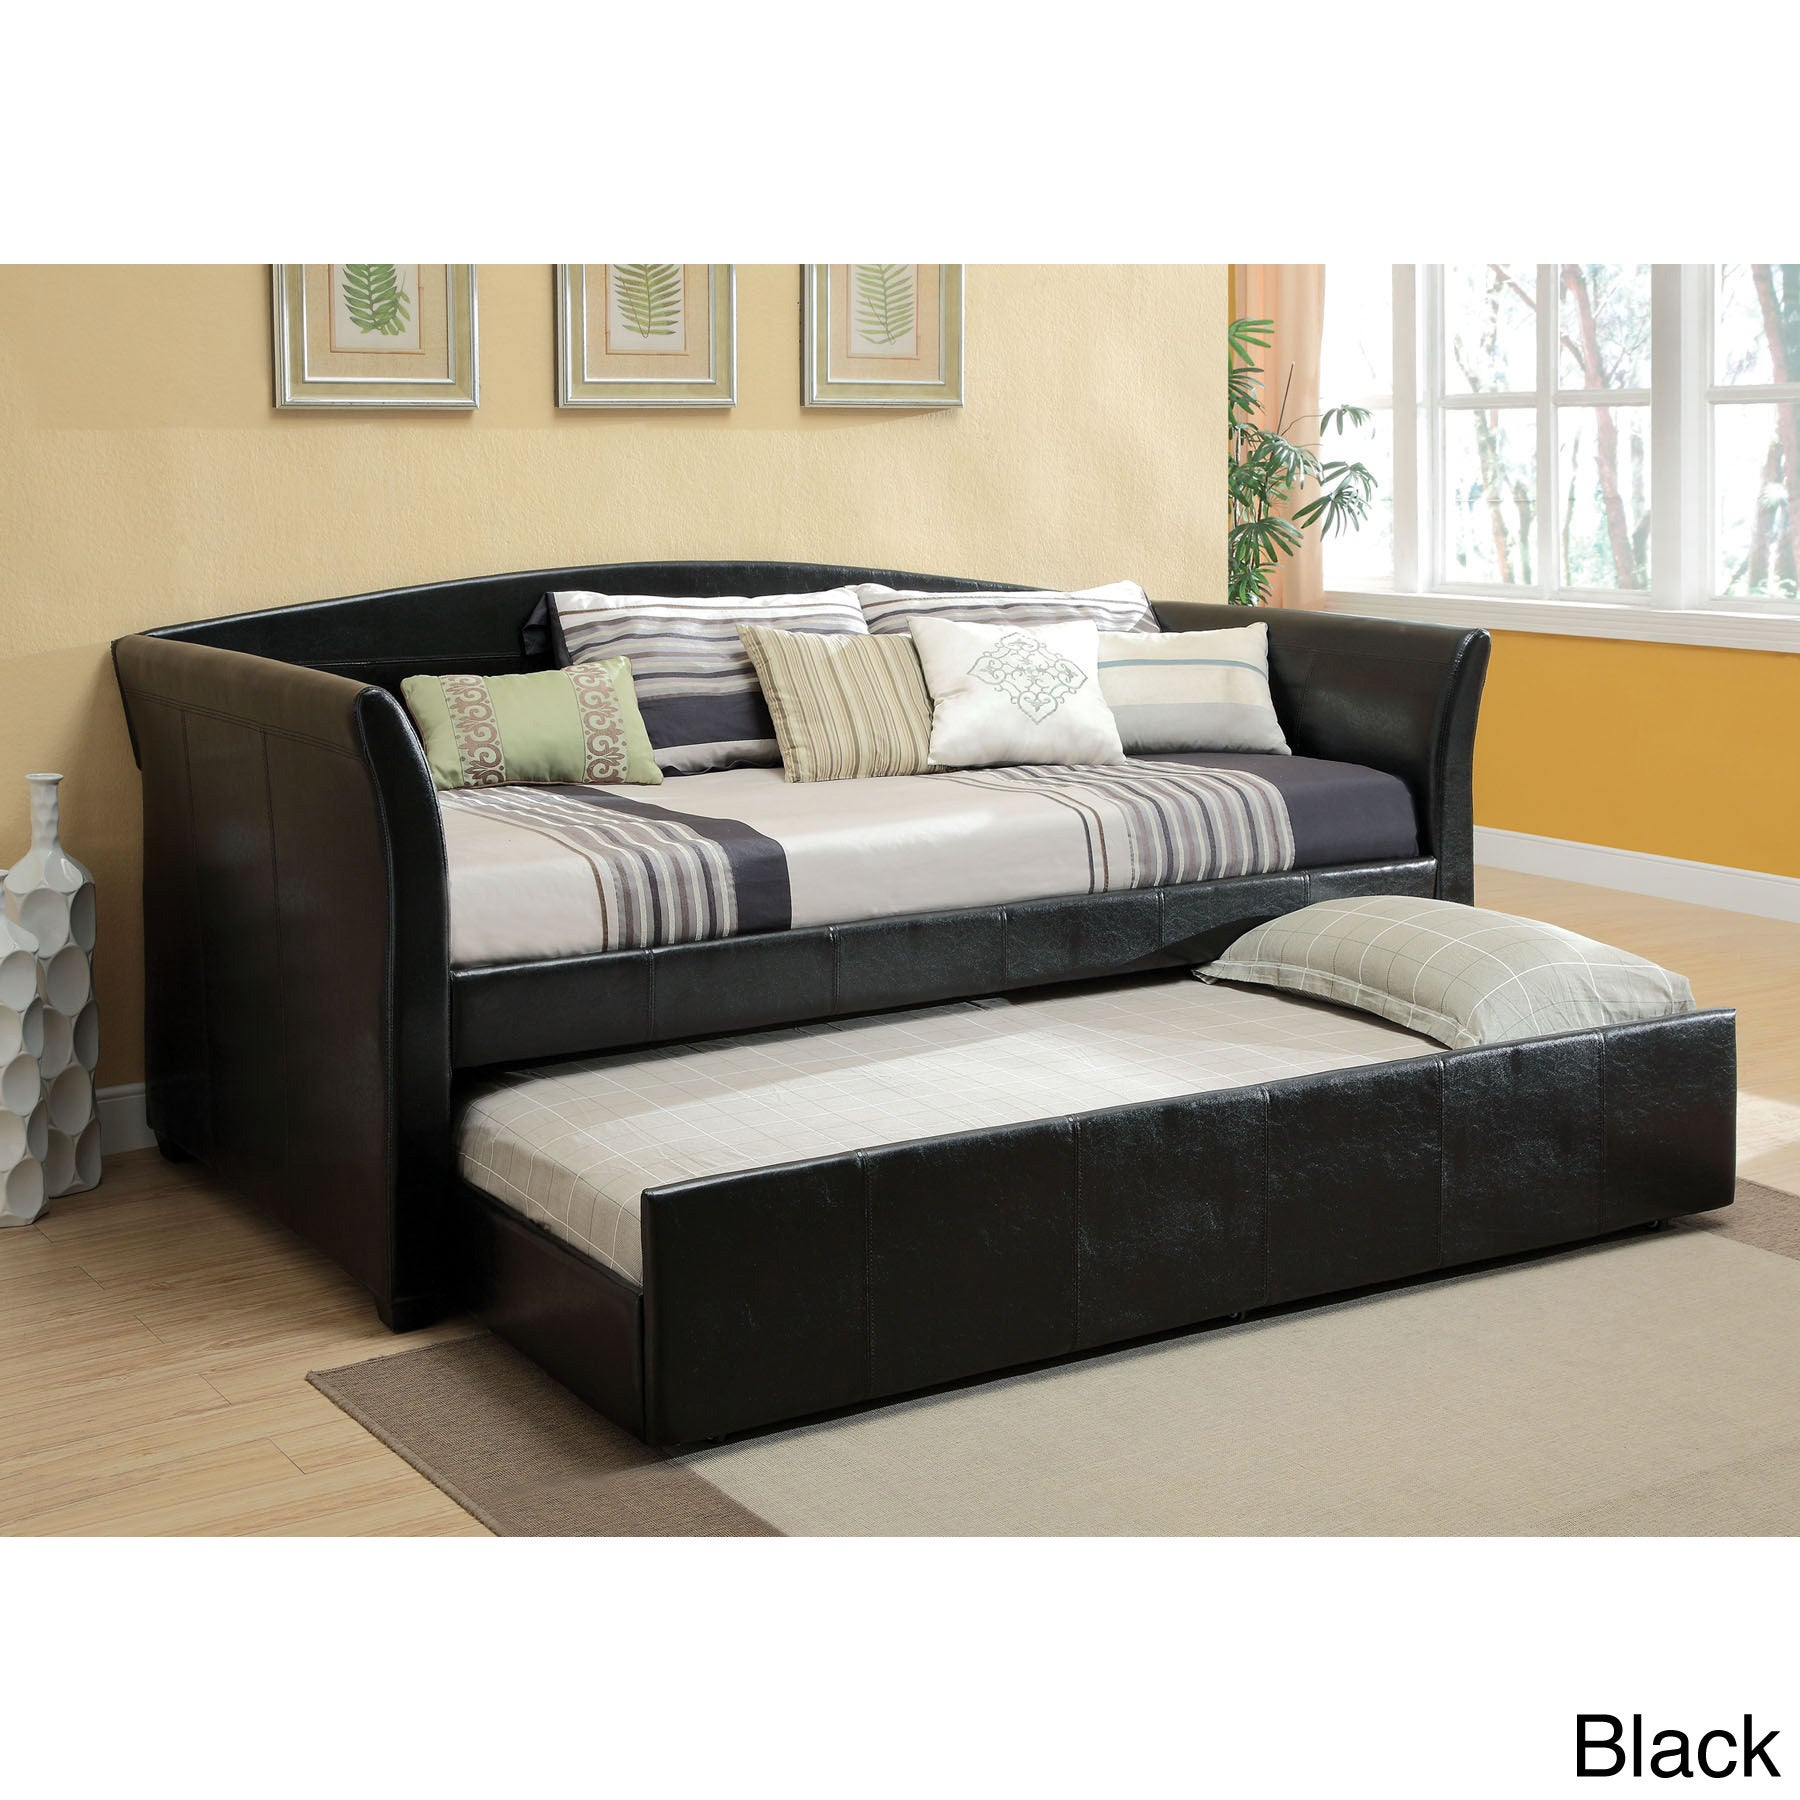 Overstock Daybeds With Trundle : Hanover contemporary style twin daybed with trundle